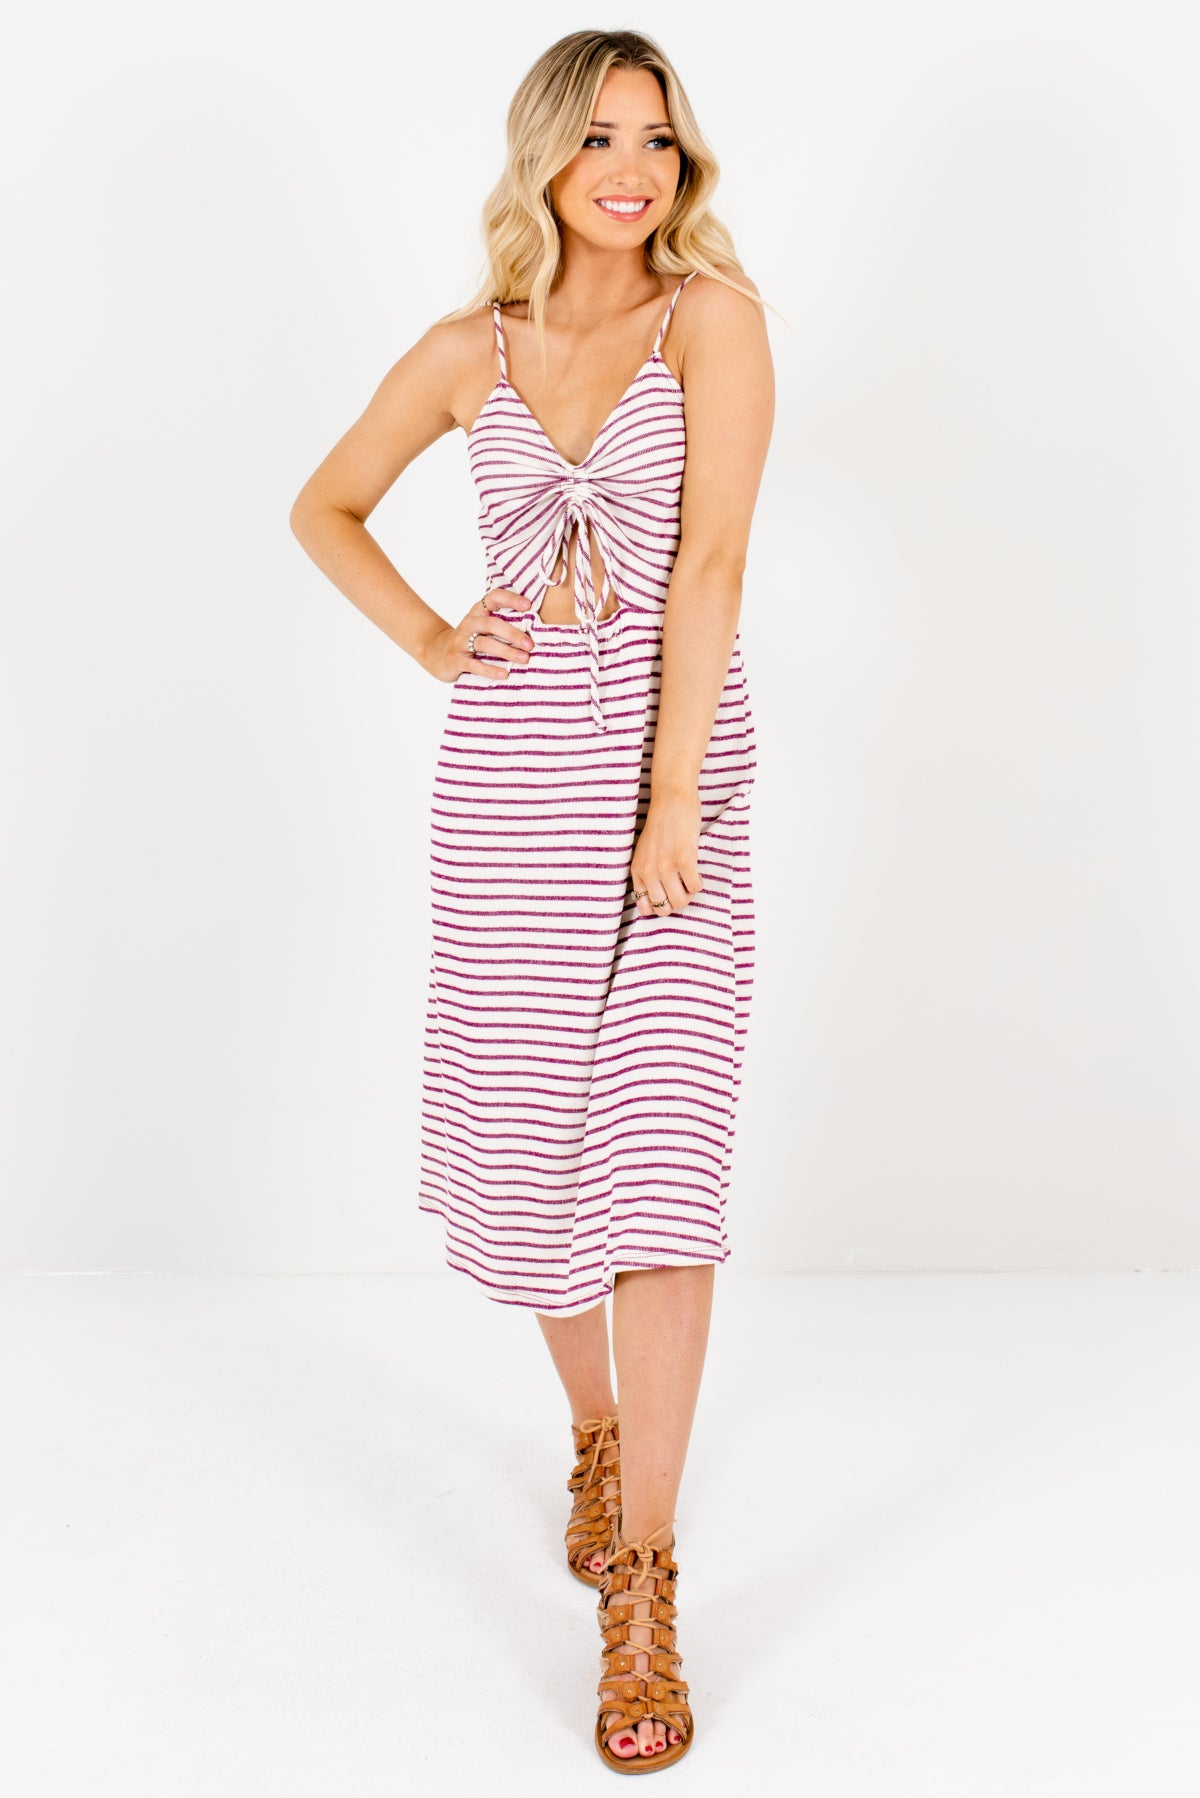 Cream and Purple Striped Boutique Midi Length Dresses for Women